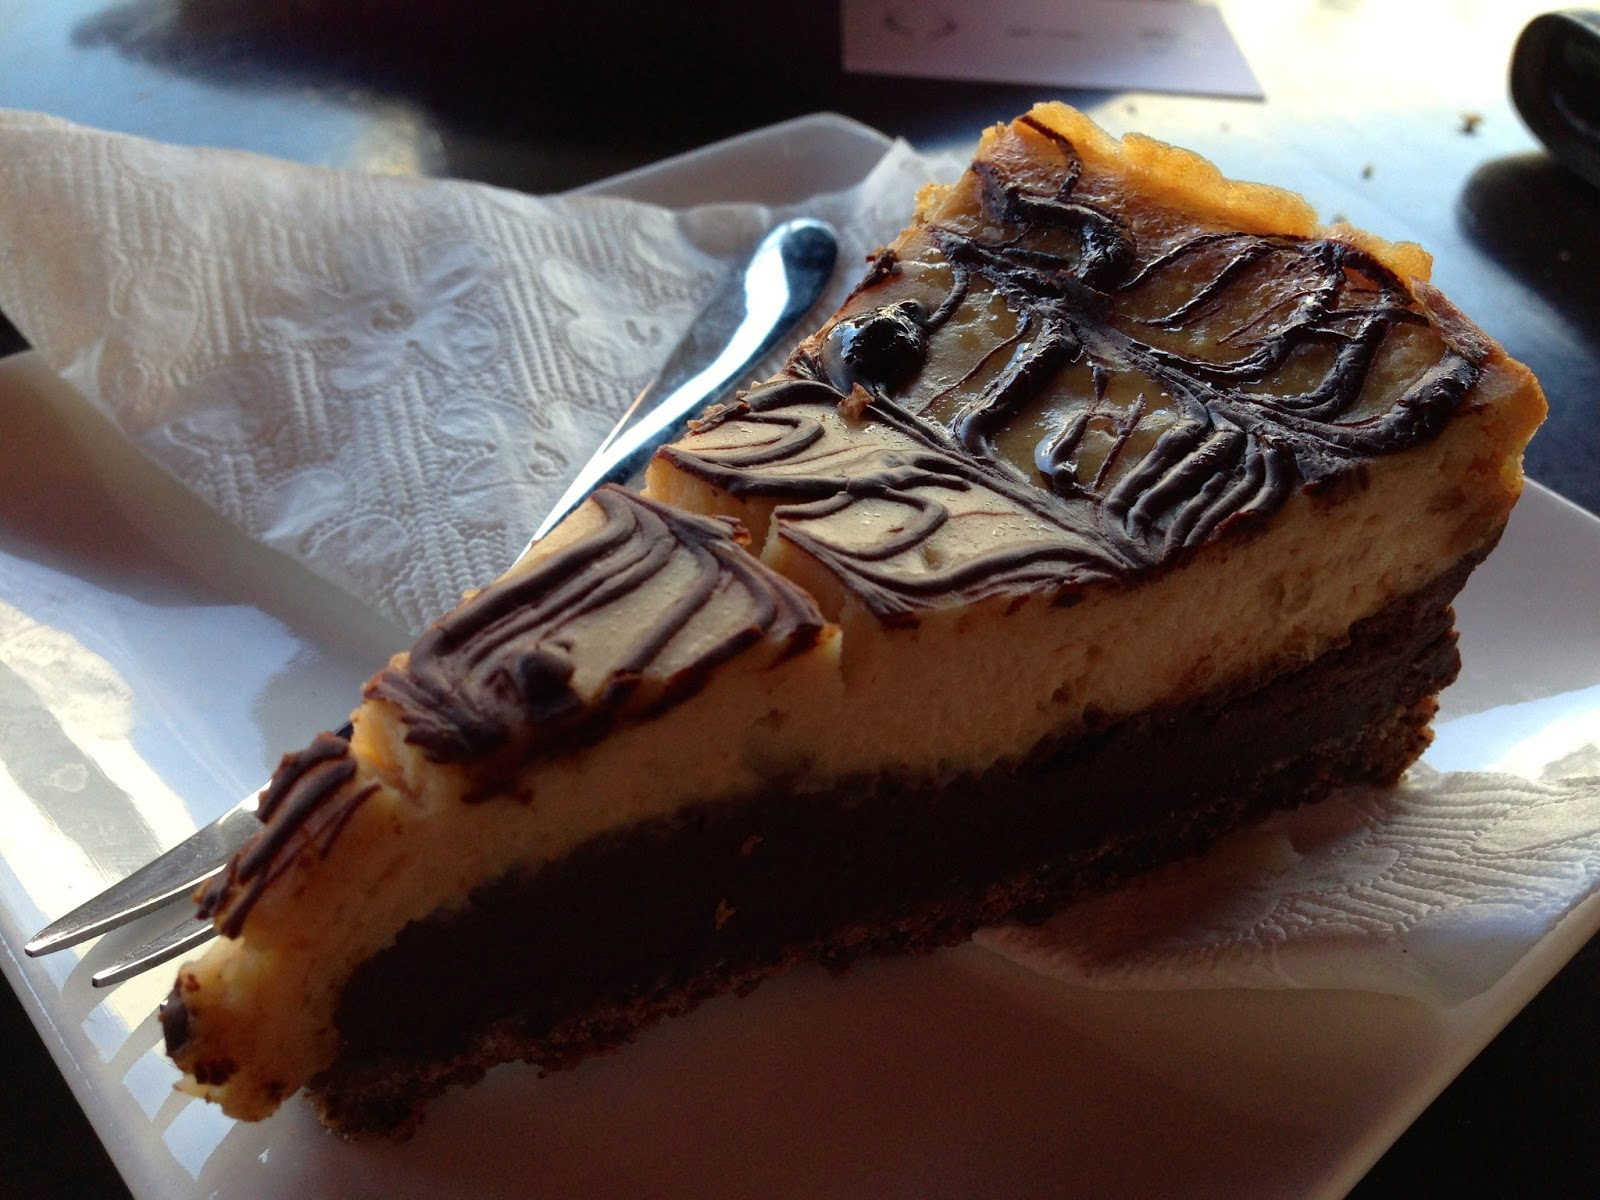 Peanut butter cheesecake - The Annex Cafe, Glenelg